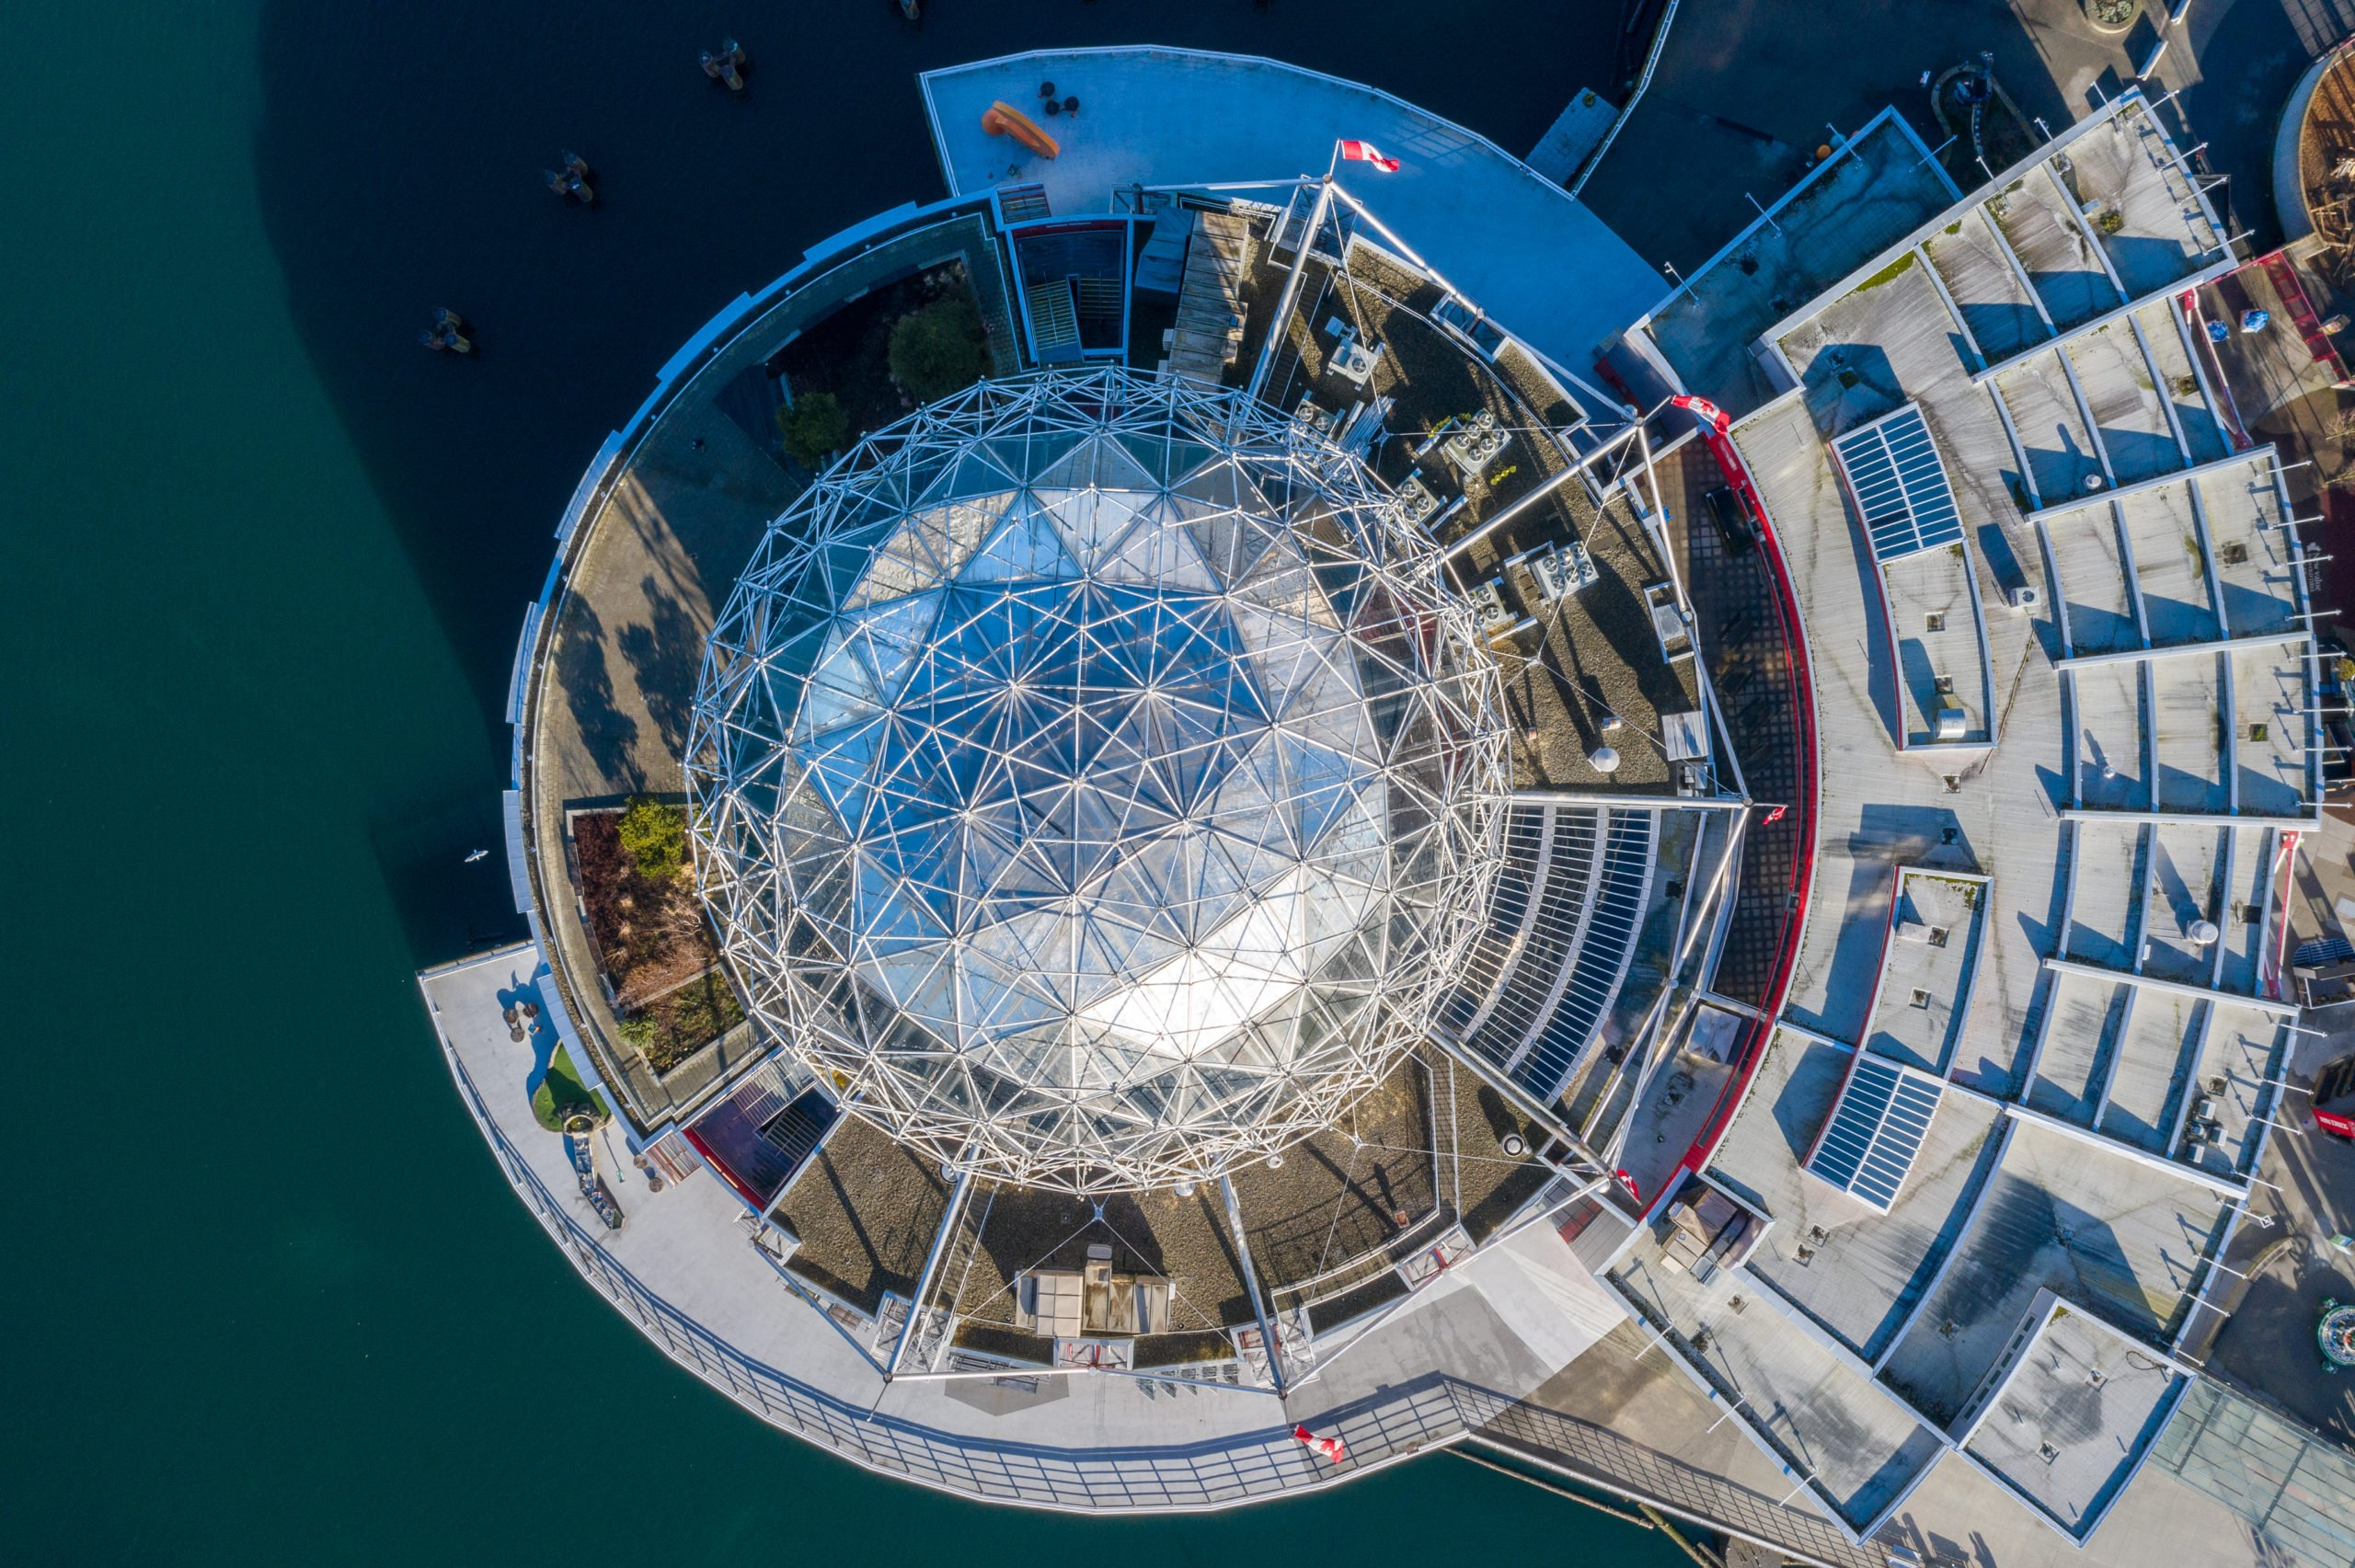 An aerial shot of Science World's geodesic dome